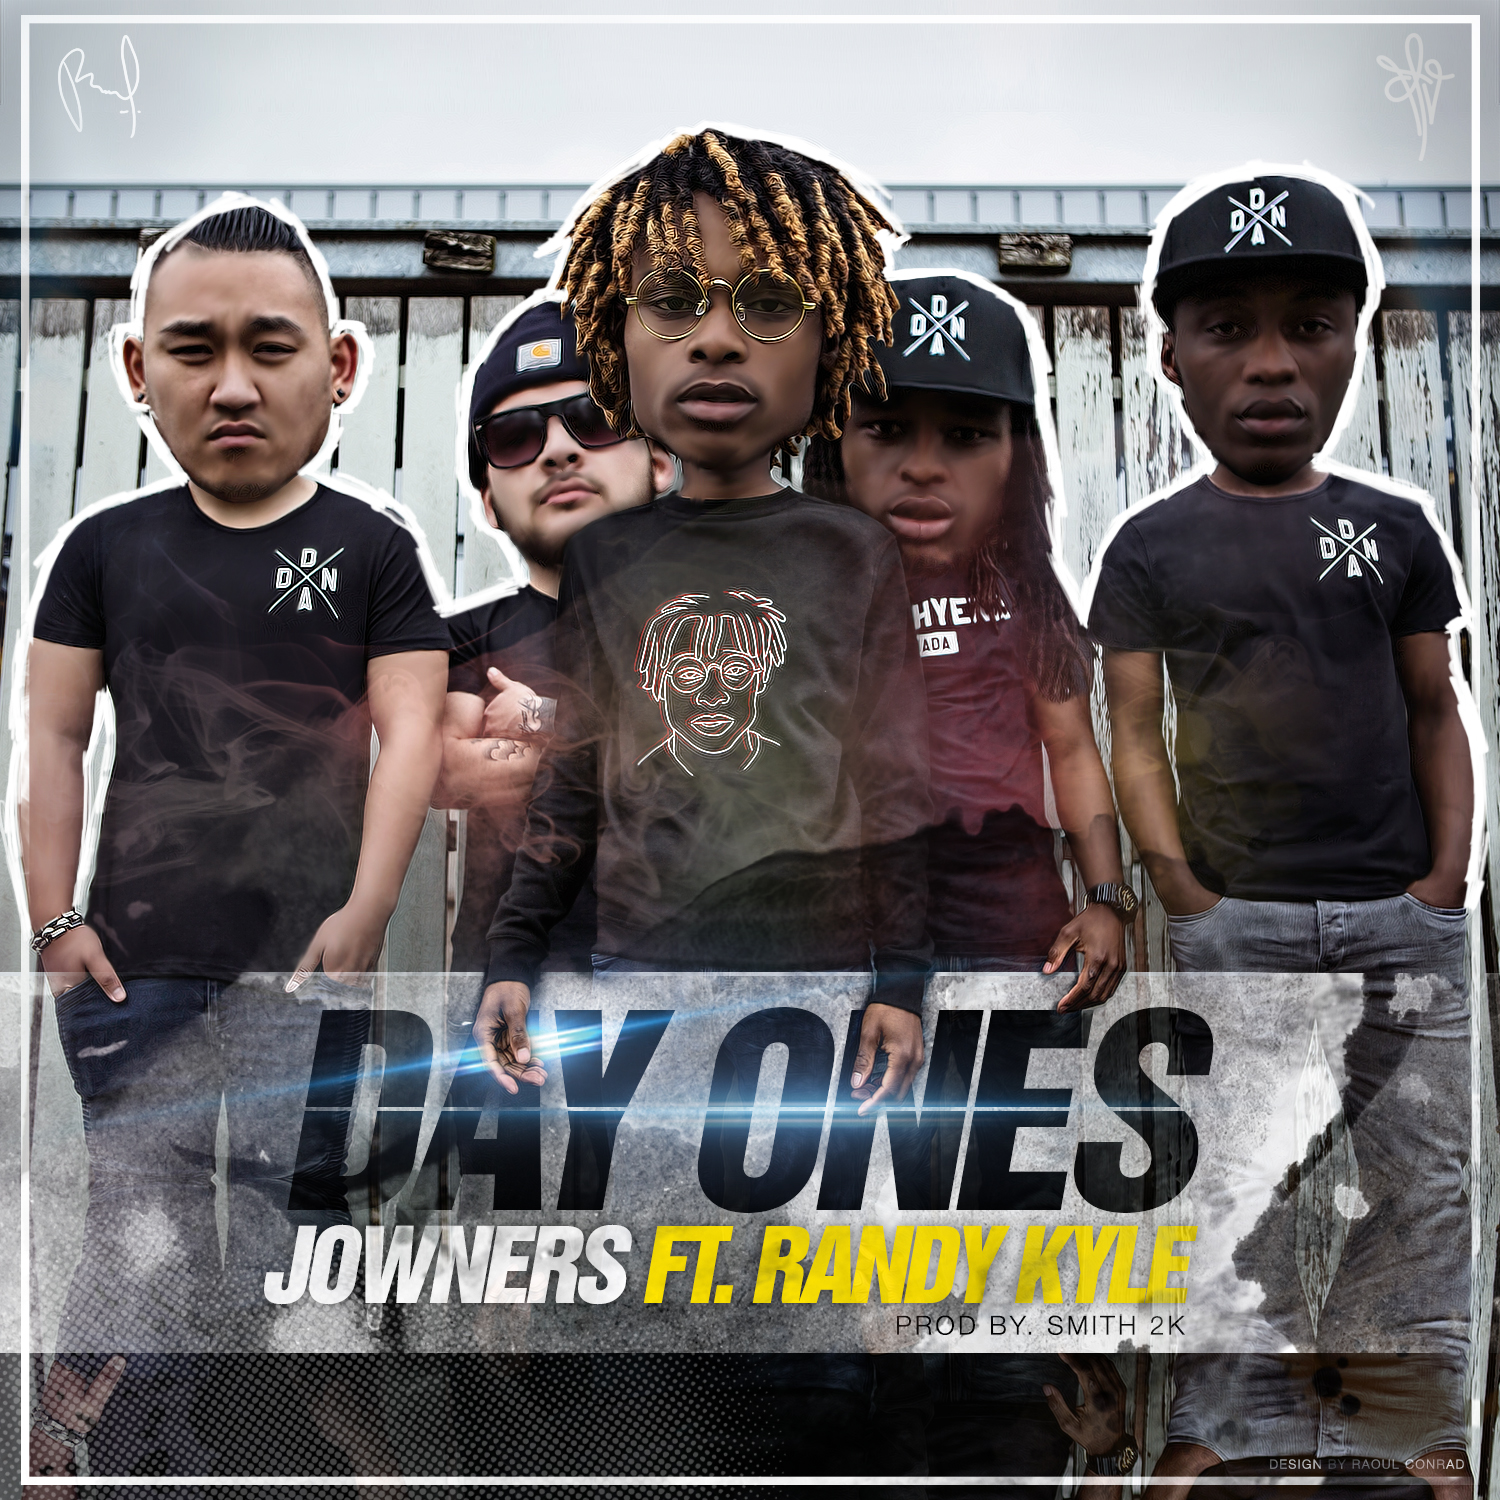 Dayones-Jowners